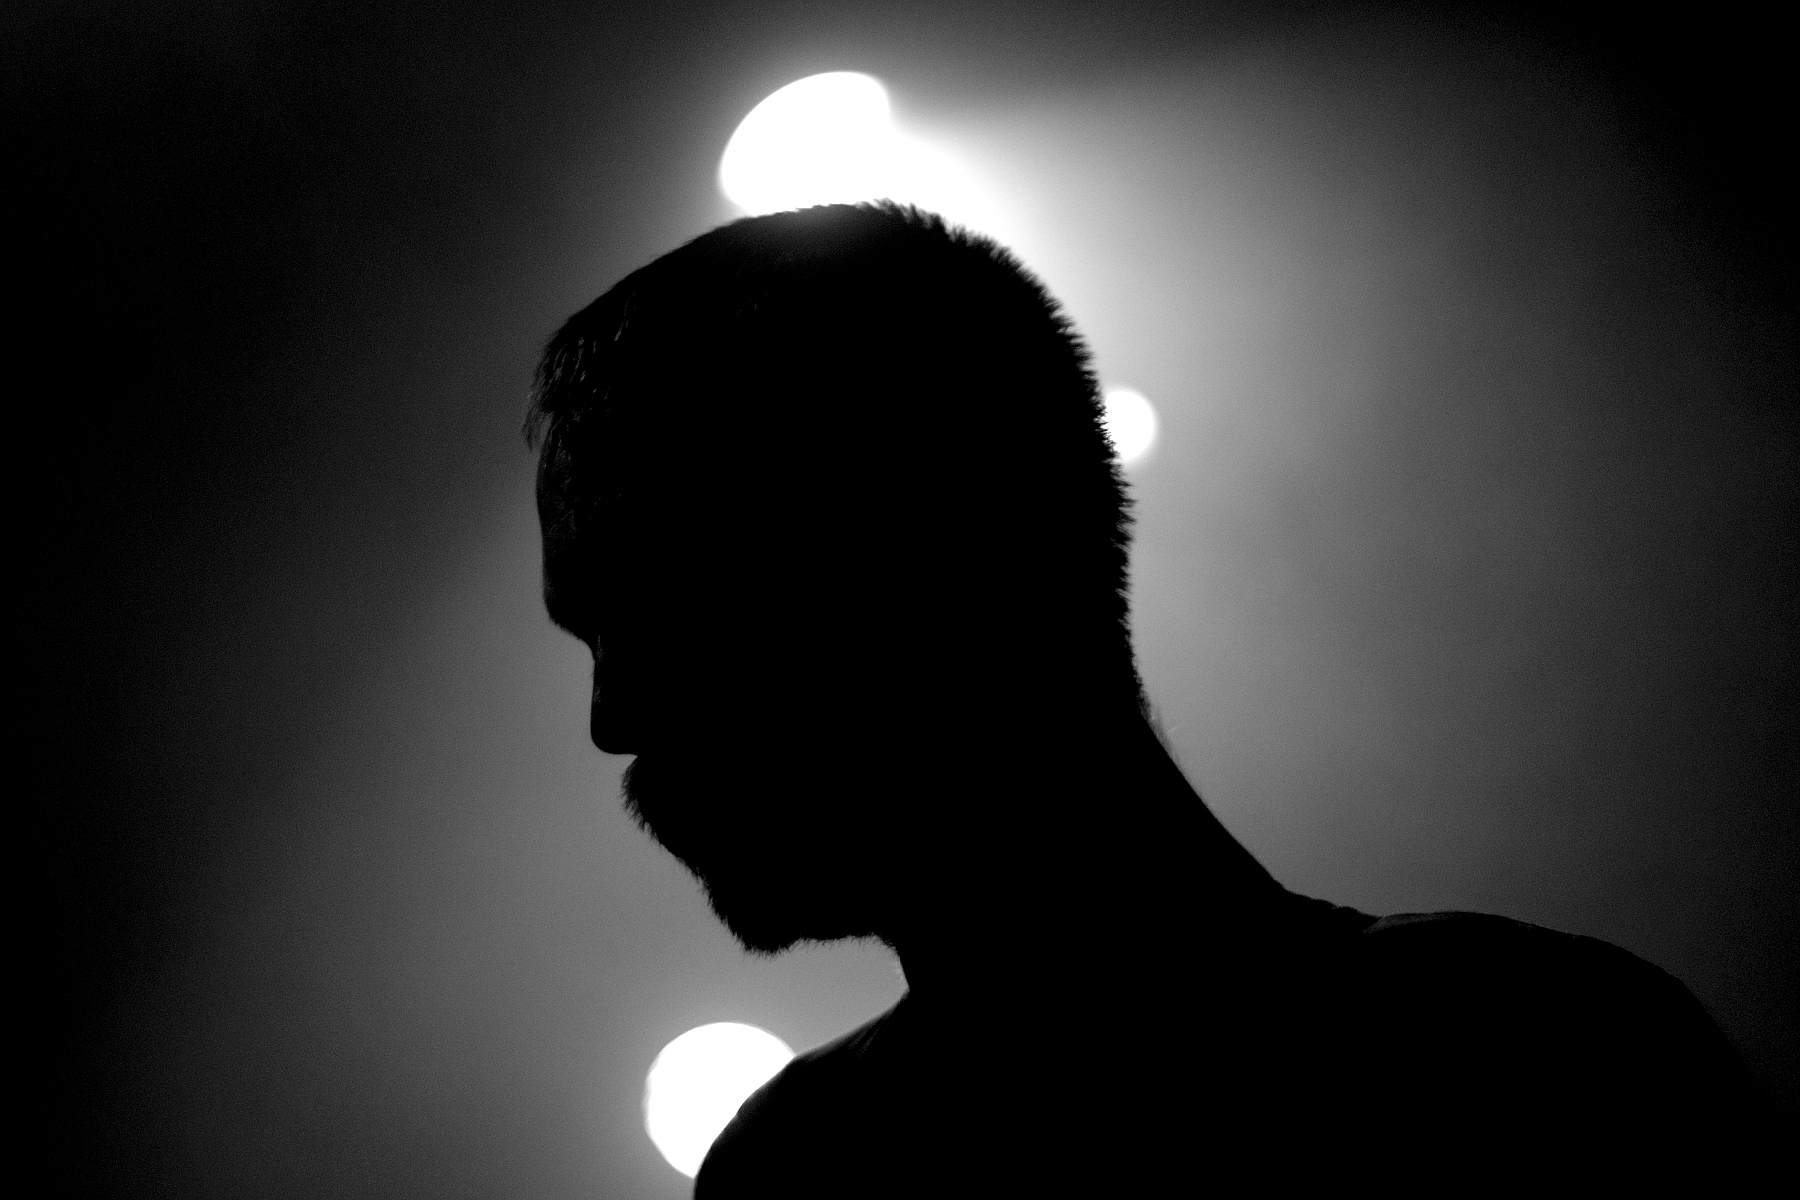 Simon Wright, Back Light, Silhouette, B&W, 65daysofstatic, La Maroquinerie, Paris